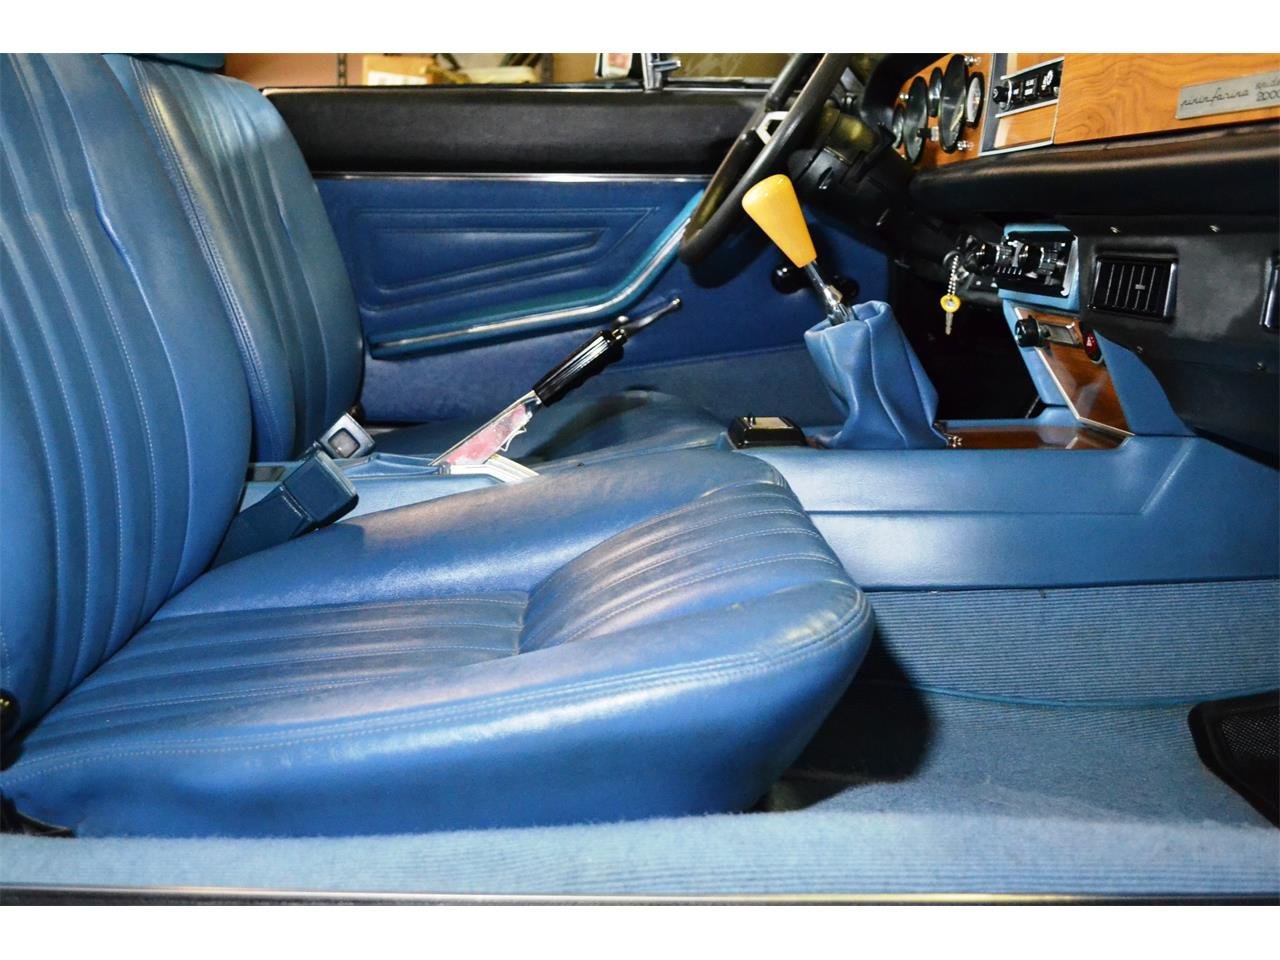 1981 Fiat Spider for sale in Barrington, IL – photo 29